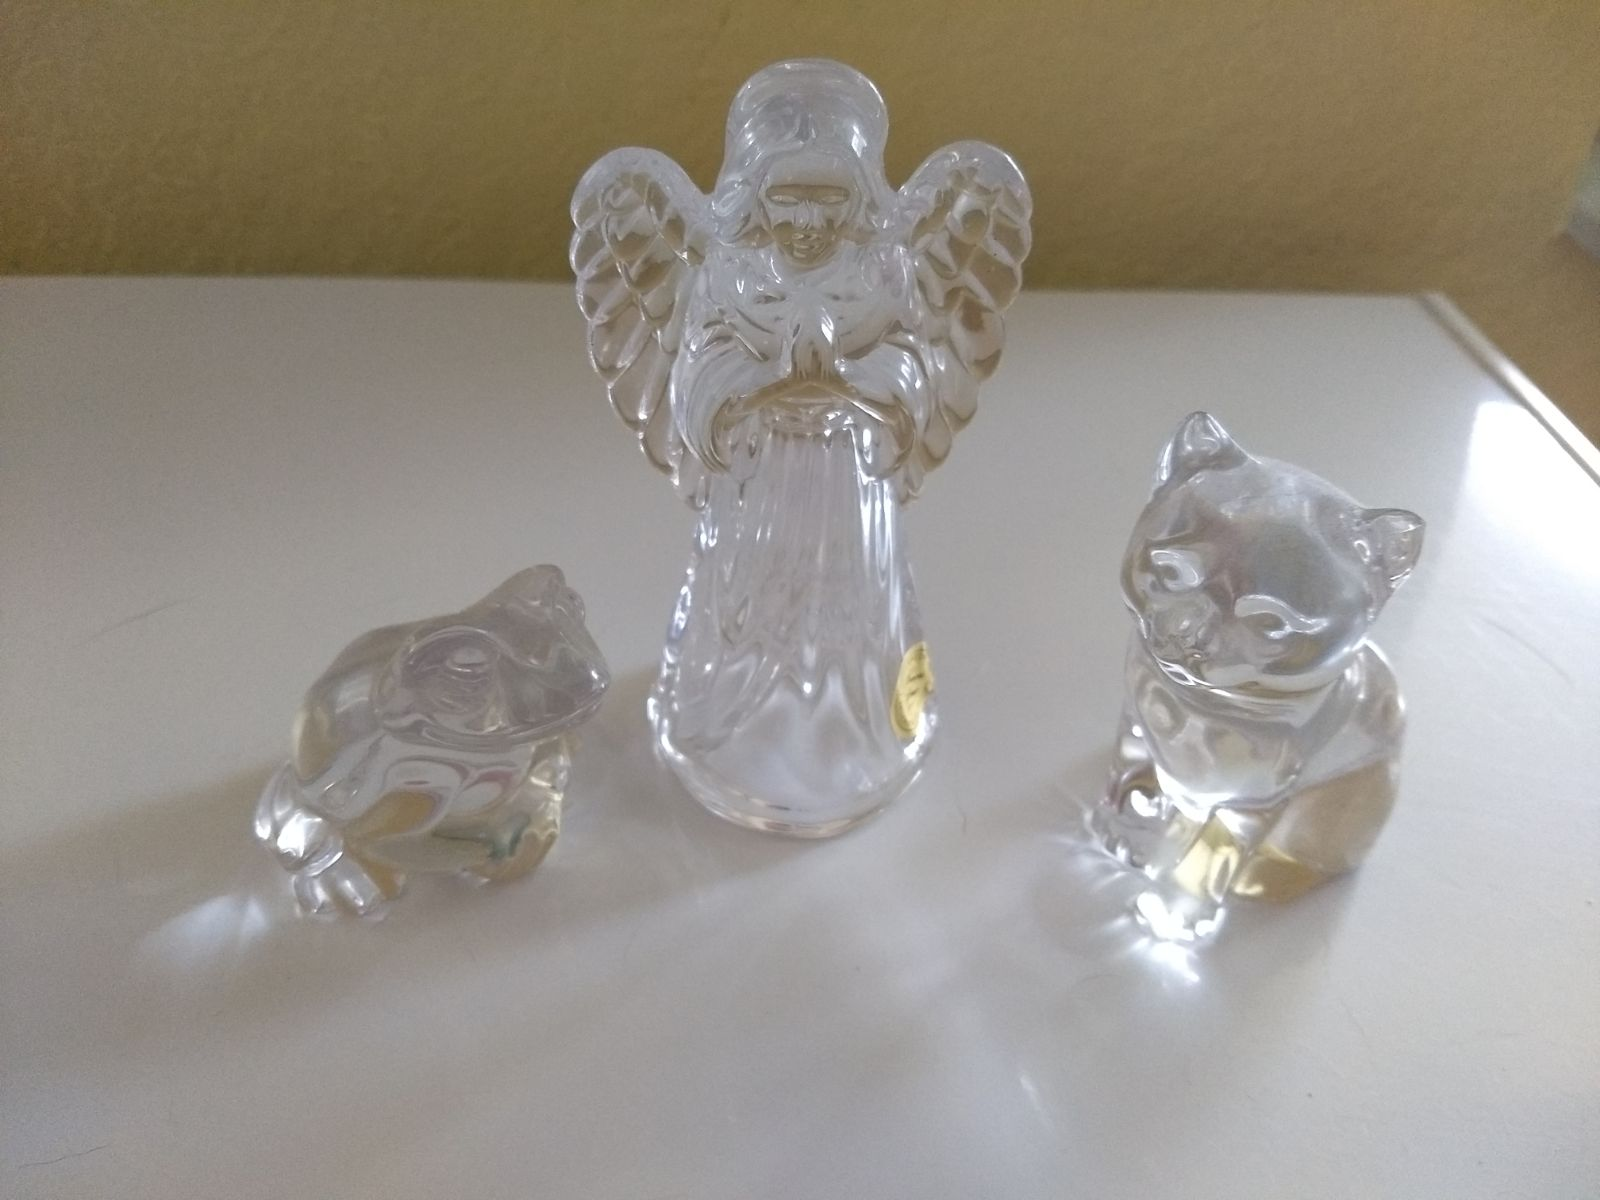 3 Piece Princess House Crystal Statues